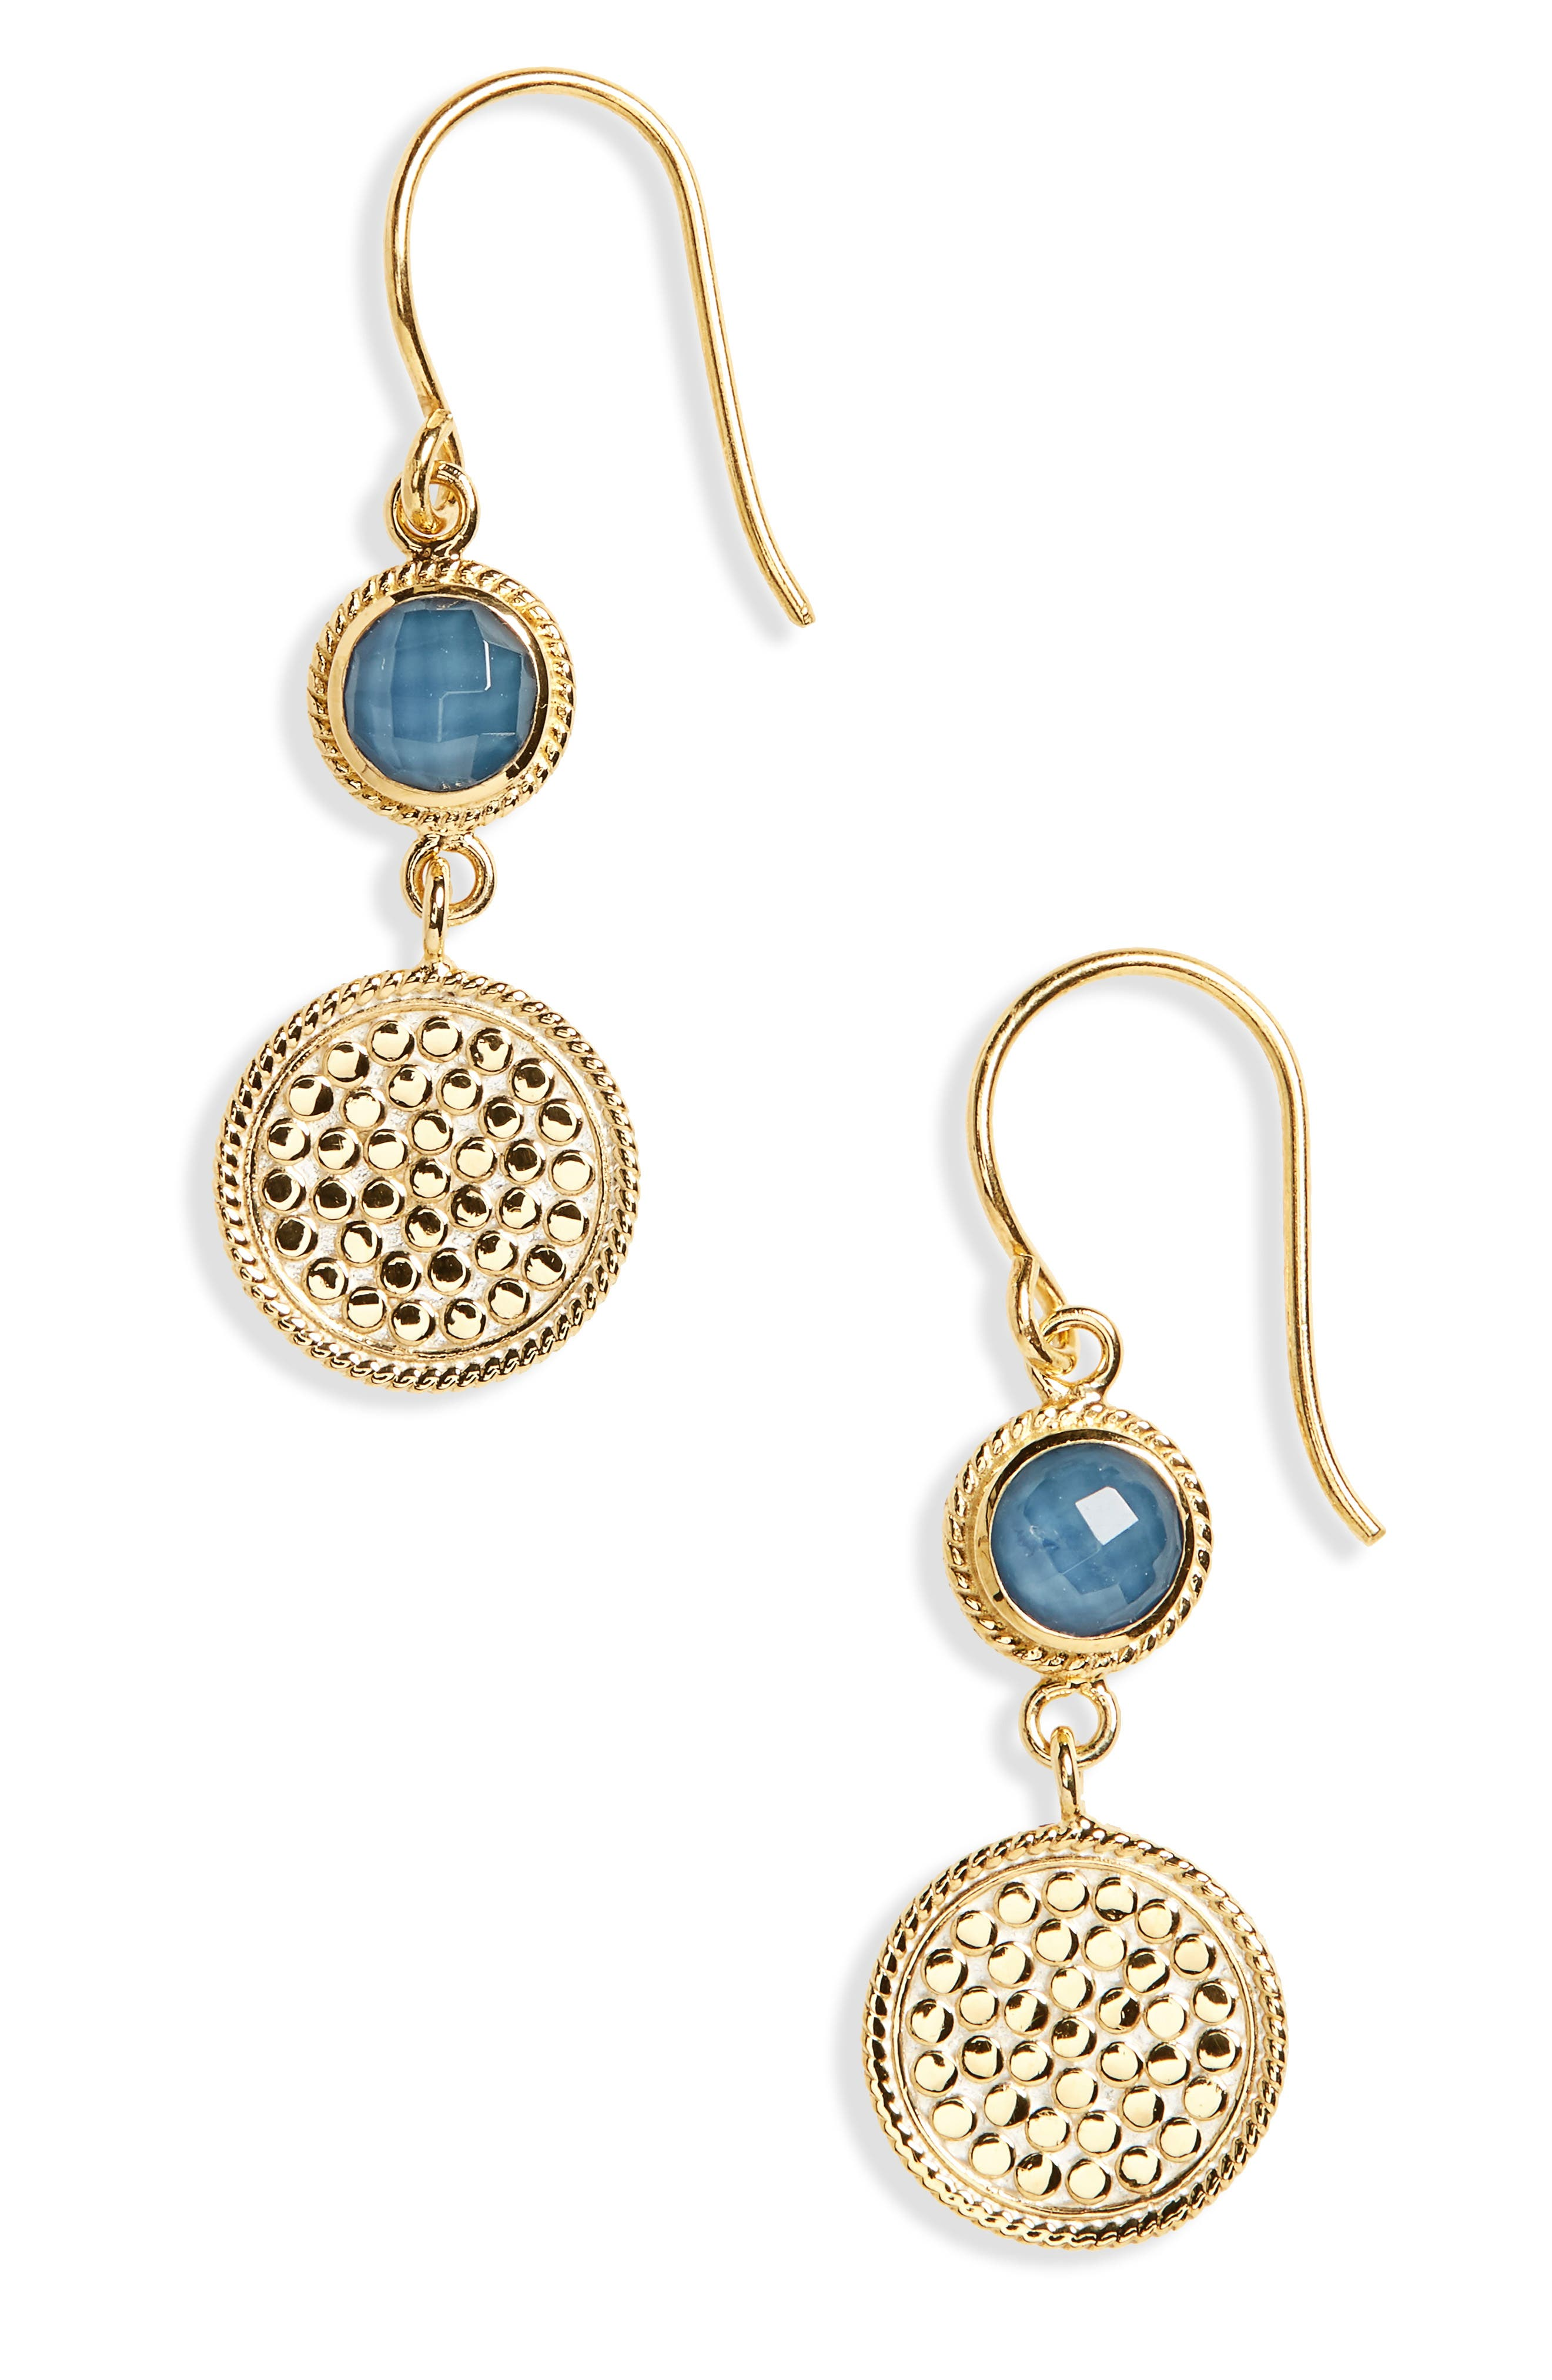 Semiprecious Stone Double Drop Earrings,                         Main,                         color, Gold/ Blue Quartz